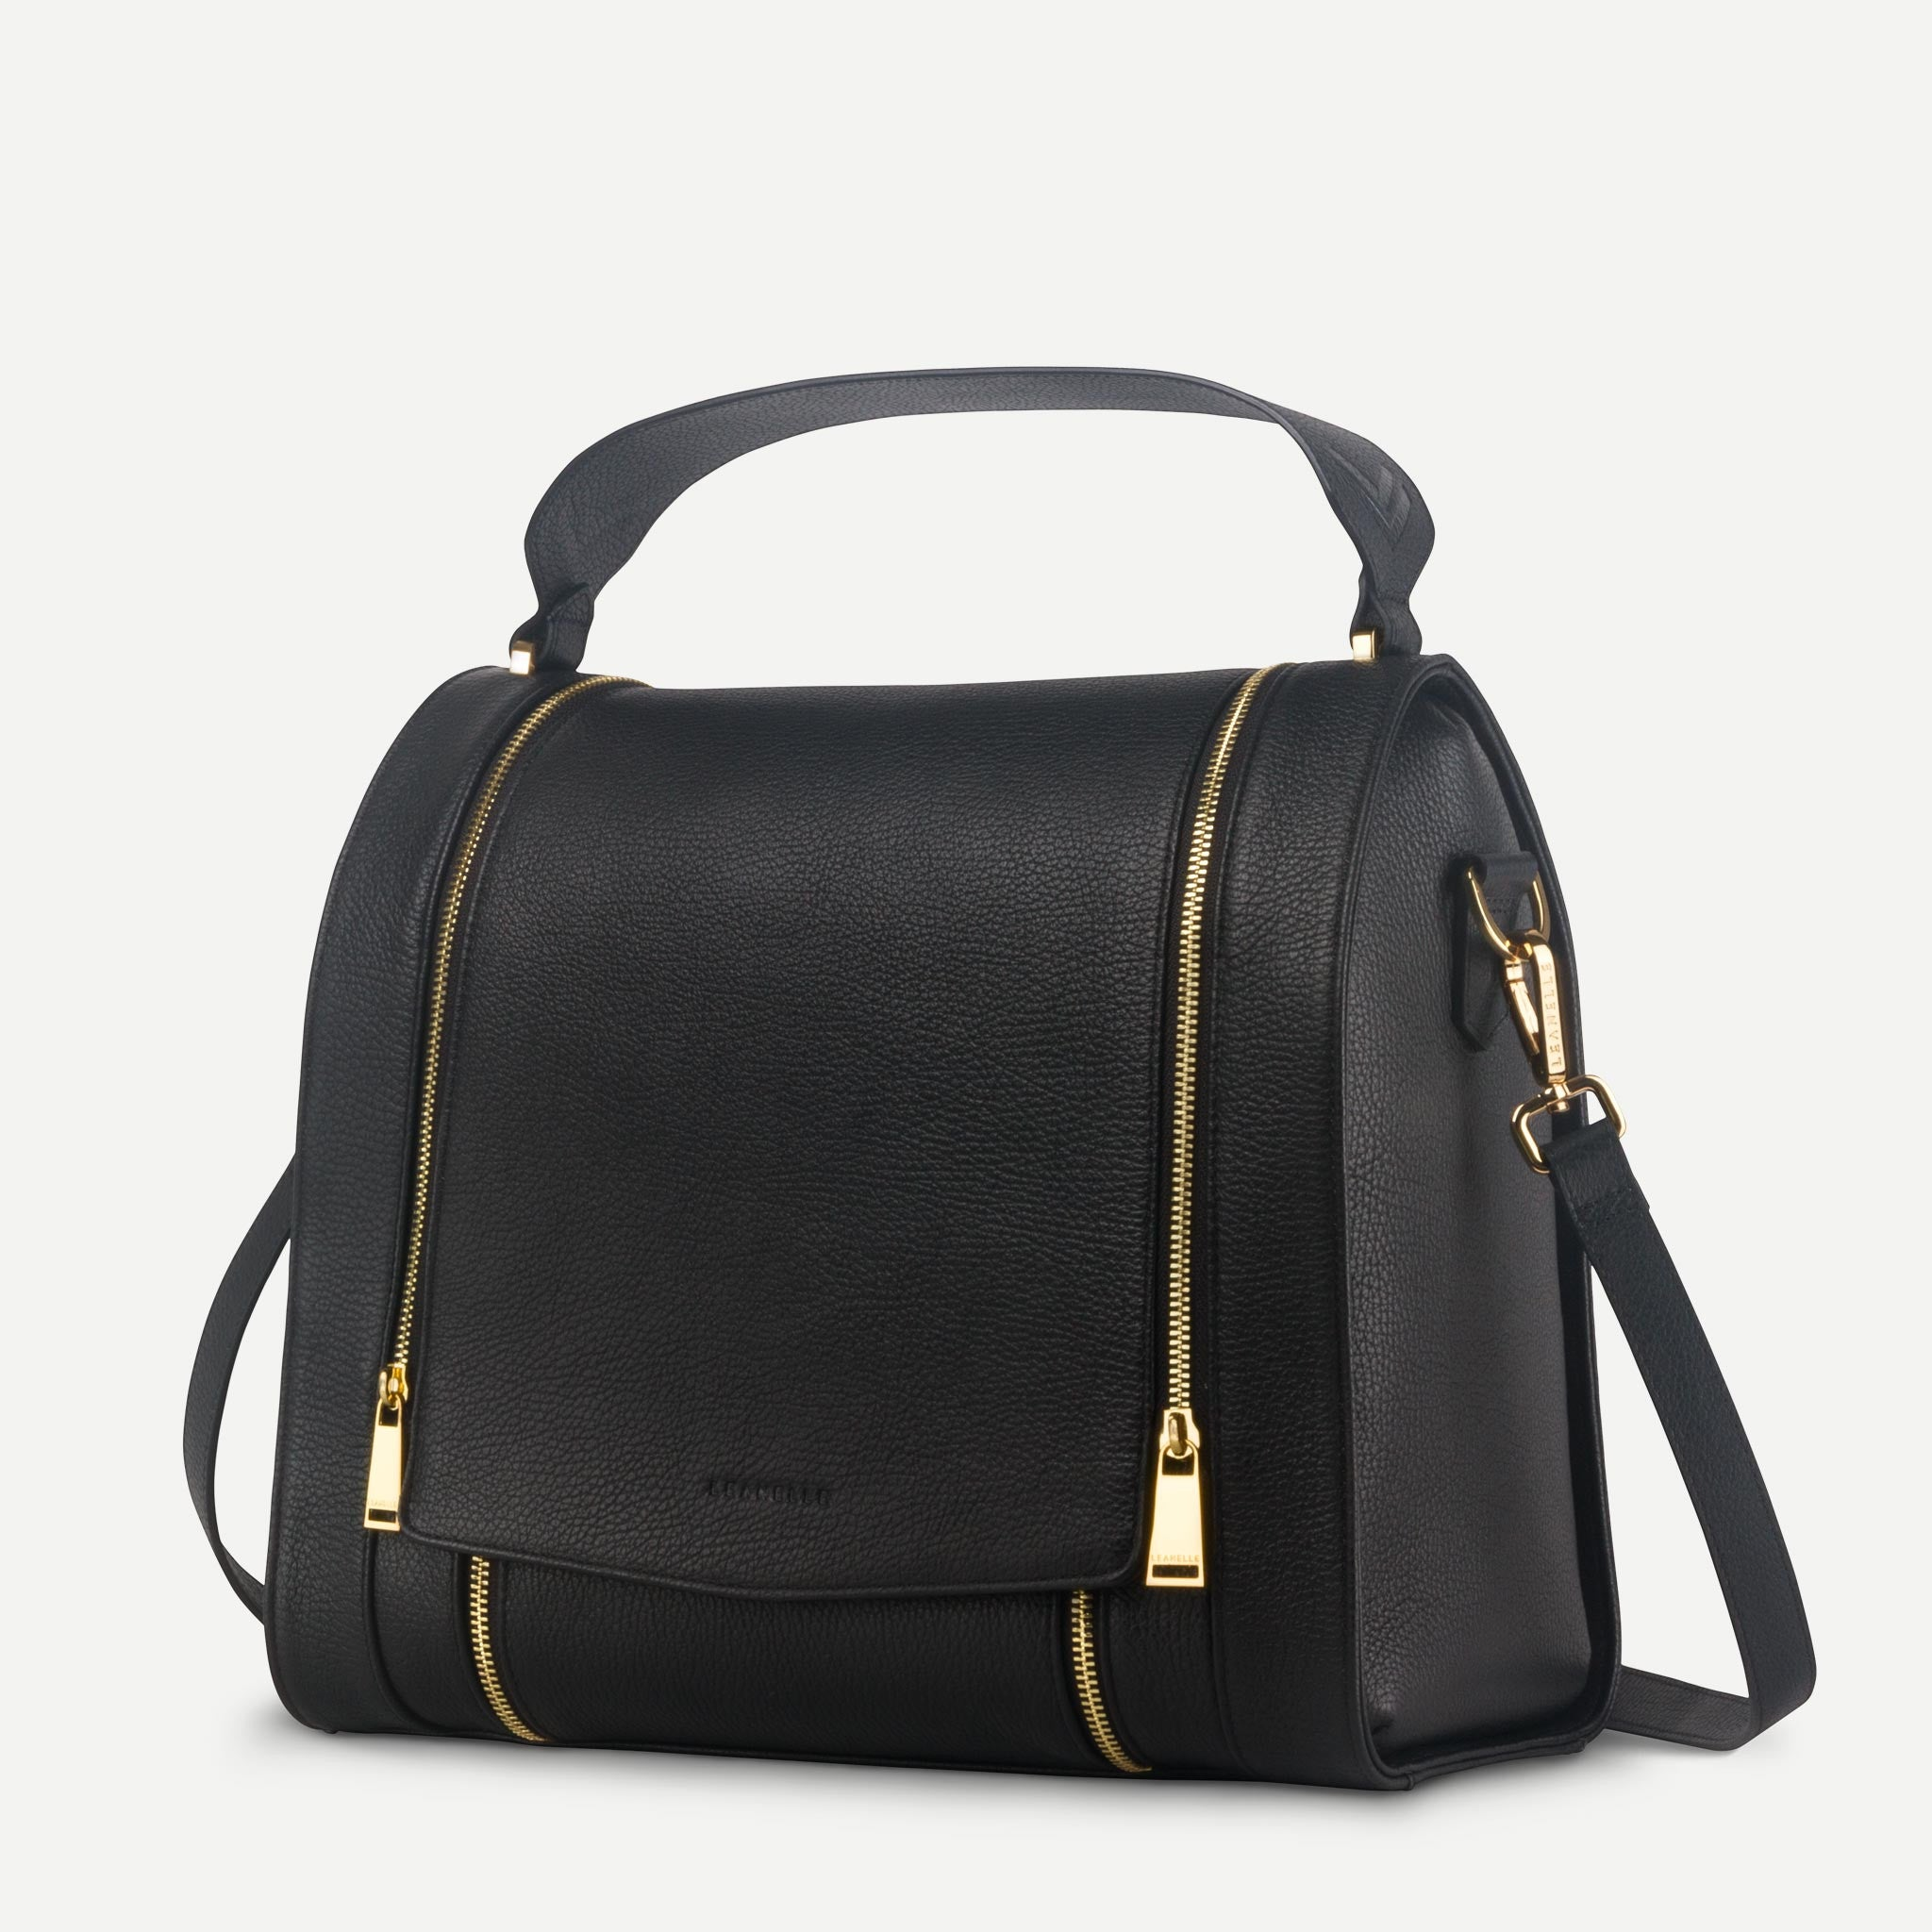 Barcelona Bag - Black